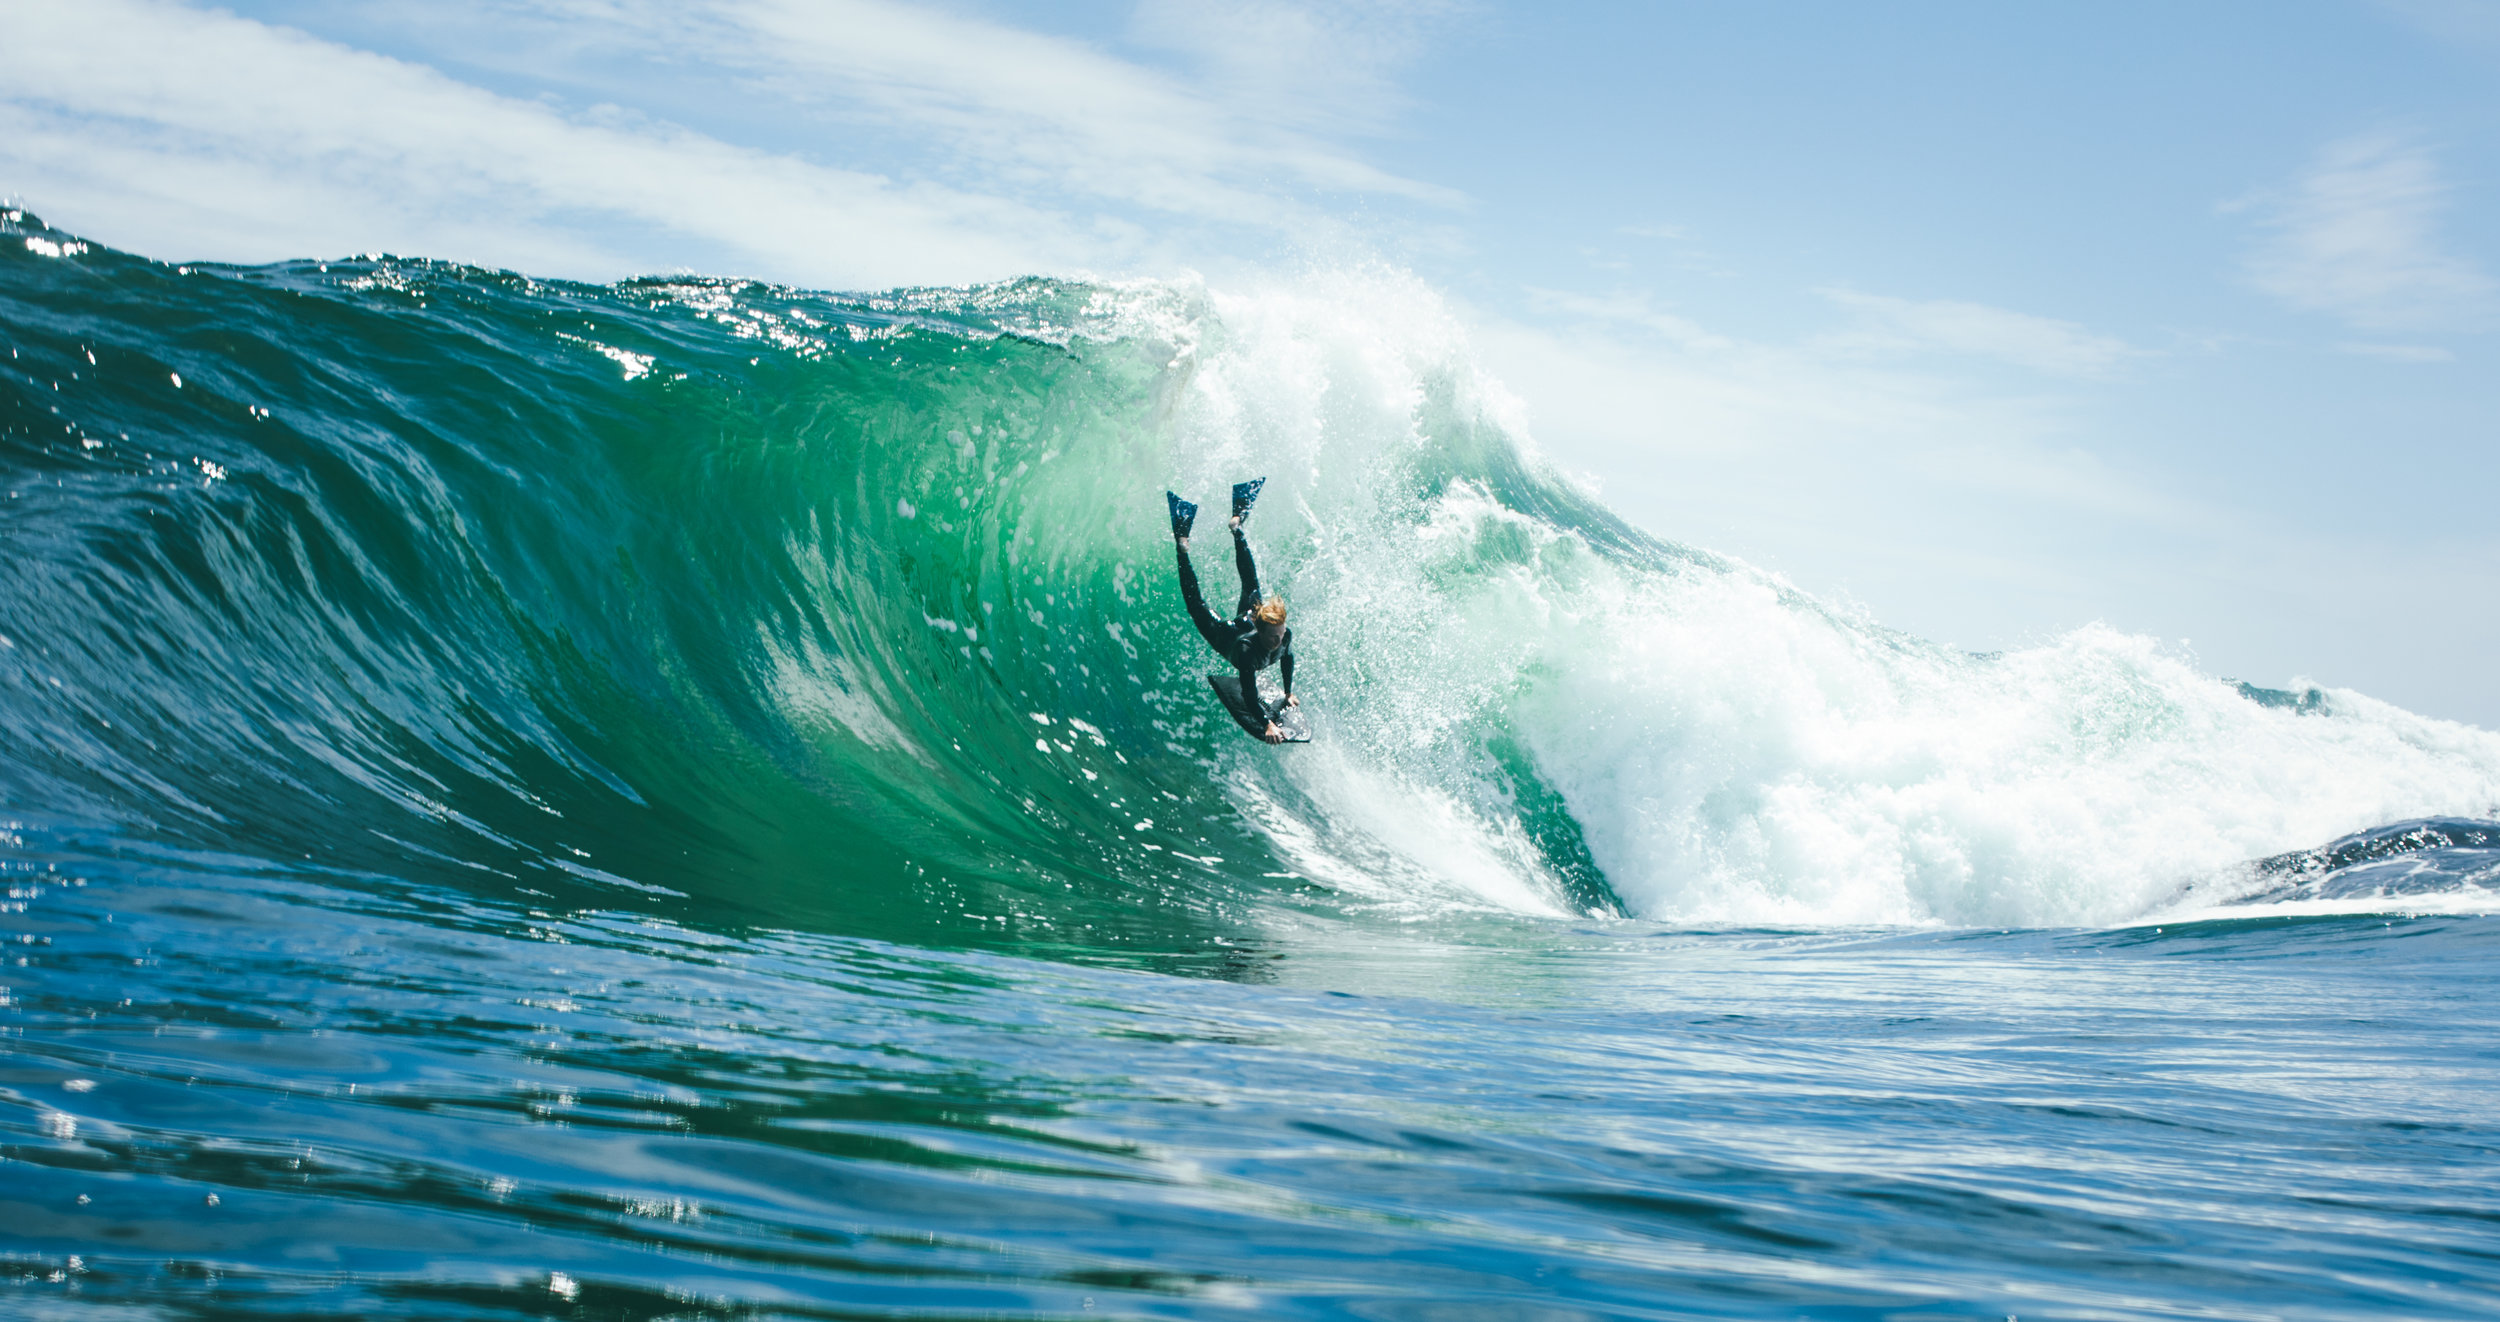 Team rider Wilder Schultz free falling at The Tand. Photography: Allan Horton